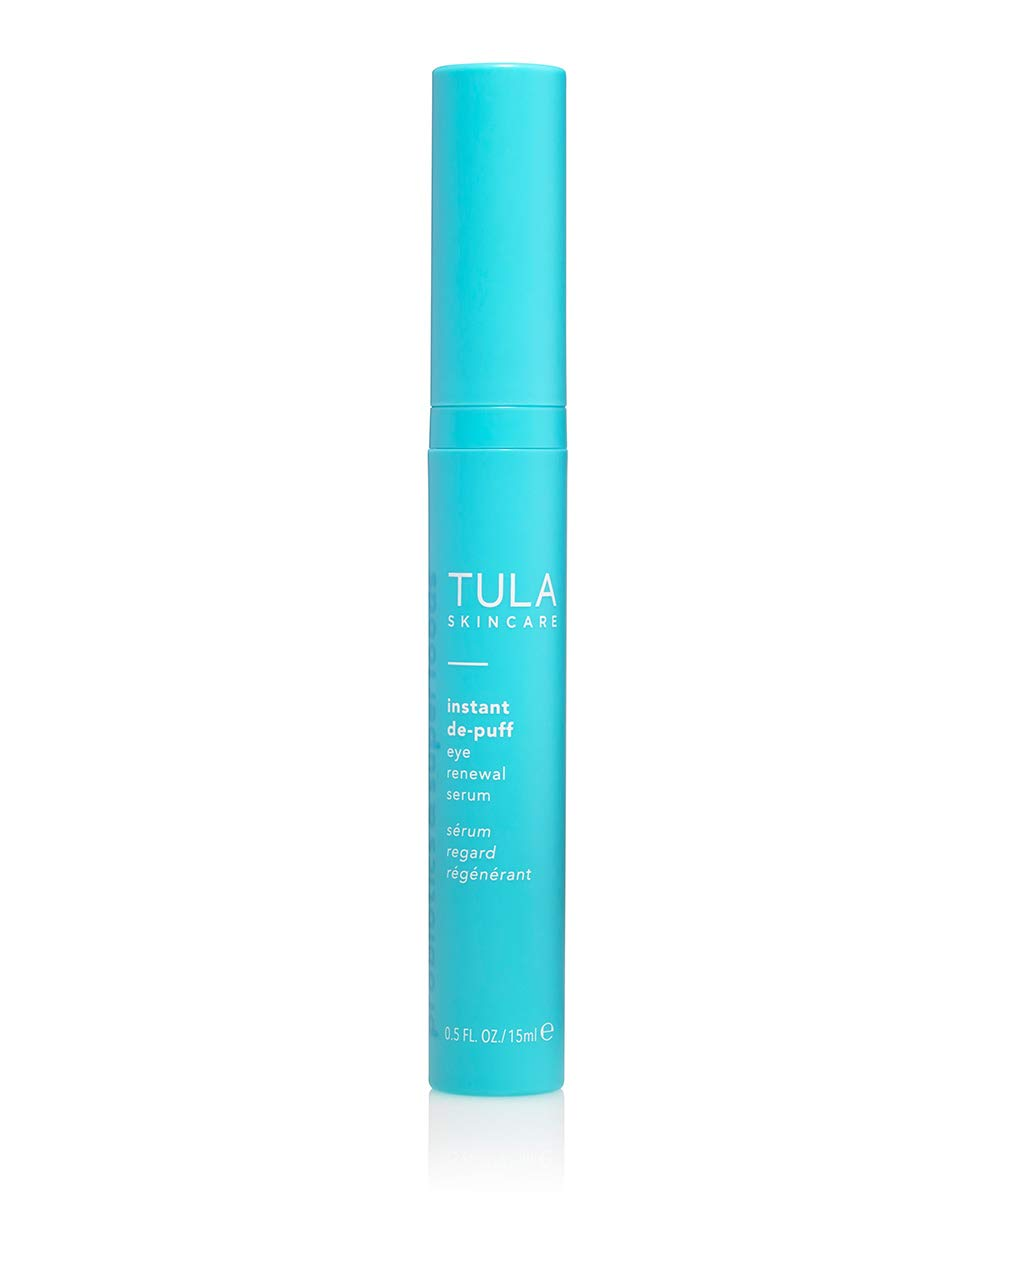 TULA Probiotic Skin Care Instant De-Puff Eye Renewal Serum | Dark Circles Under Eye Treatment, Contains Caffeine to Reduce Puffiness and Signs of Wrinkles | 0.5 fl oz